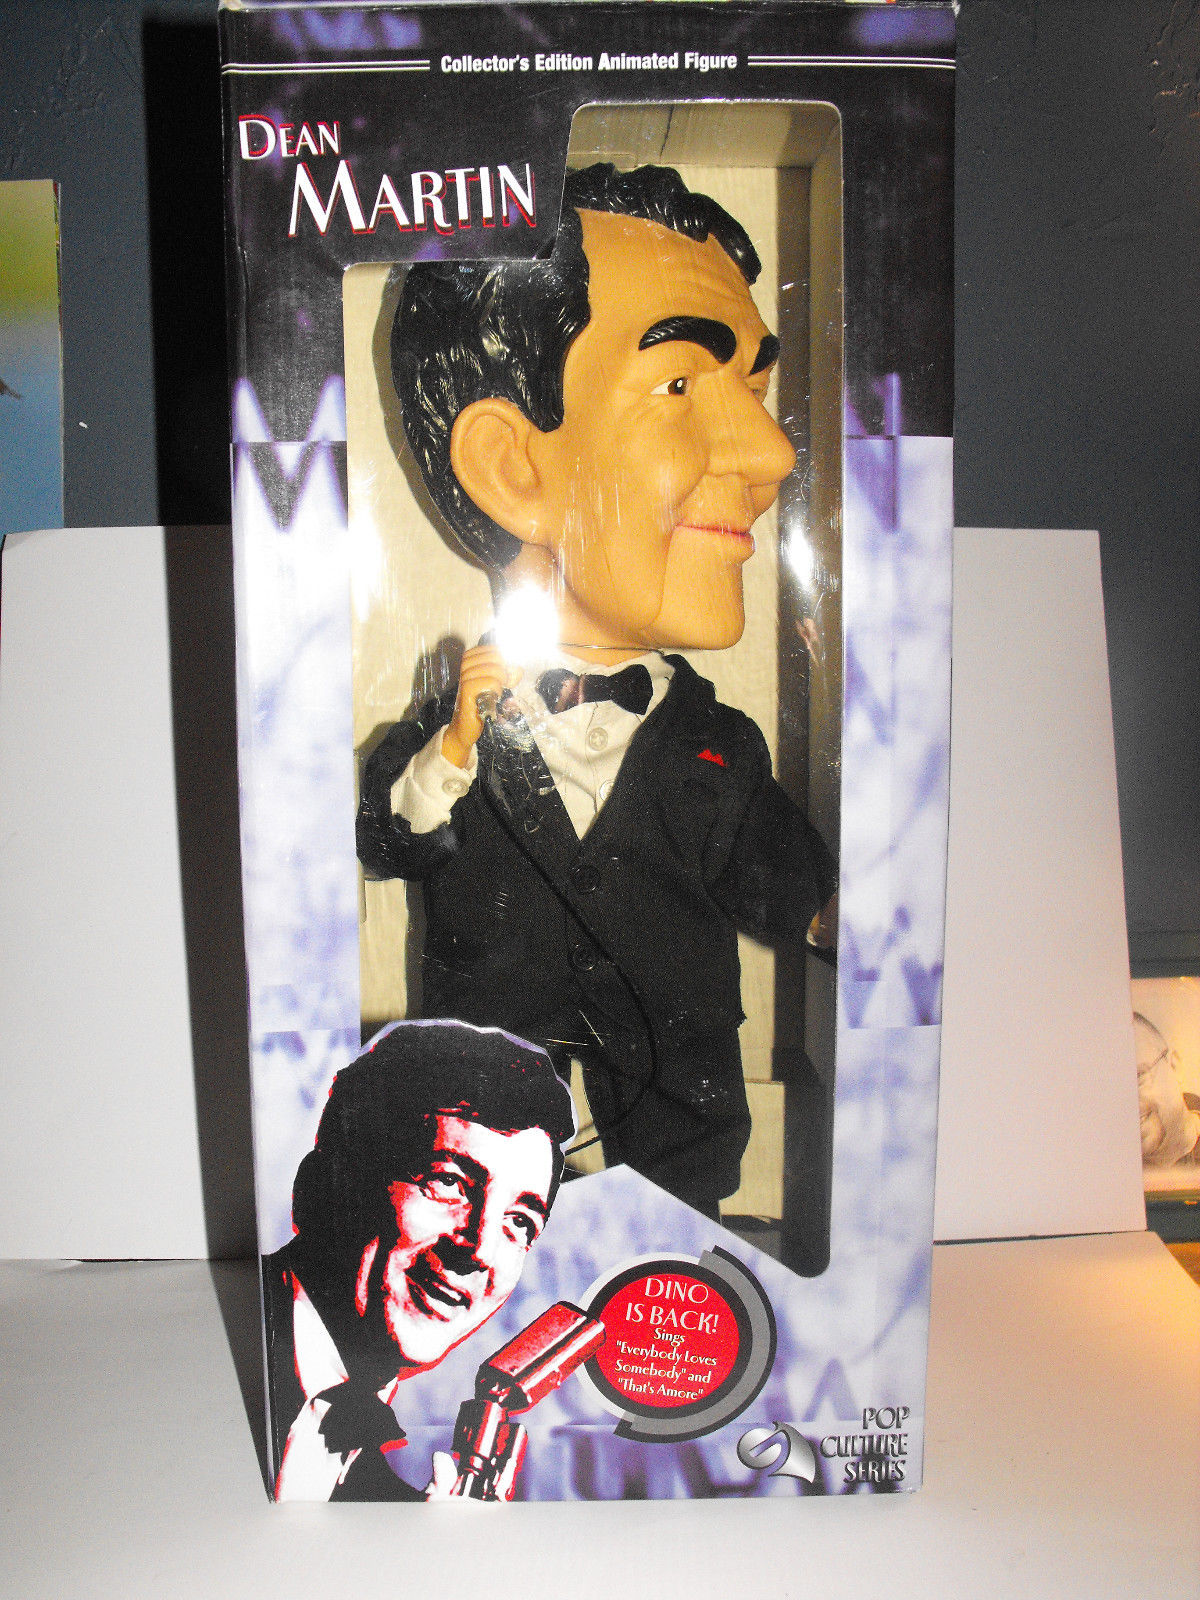 Image Dean Martin Collectors Edition Animated Figure Jpg